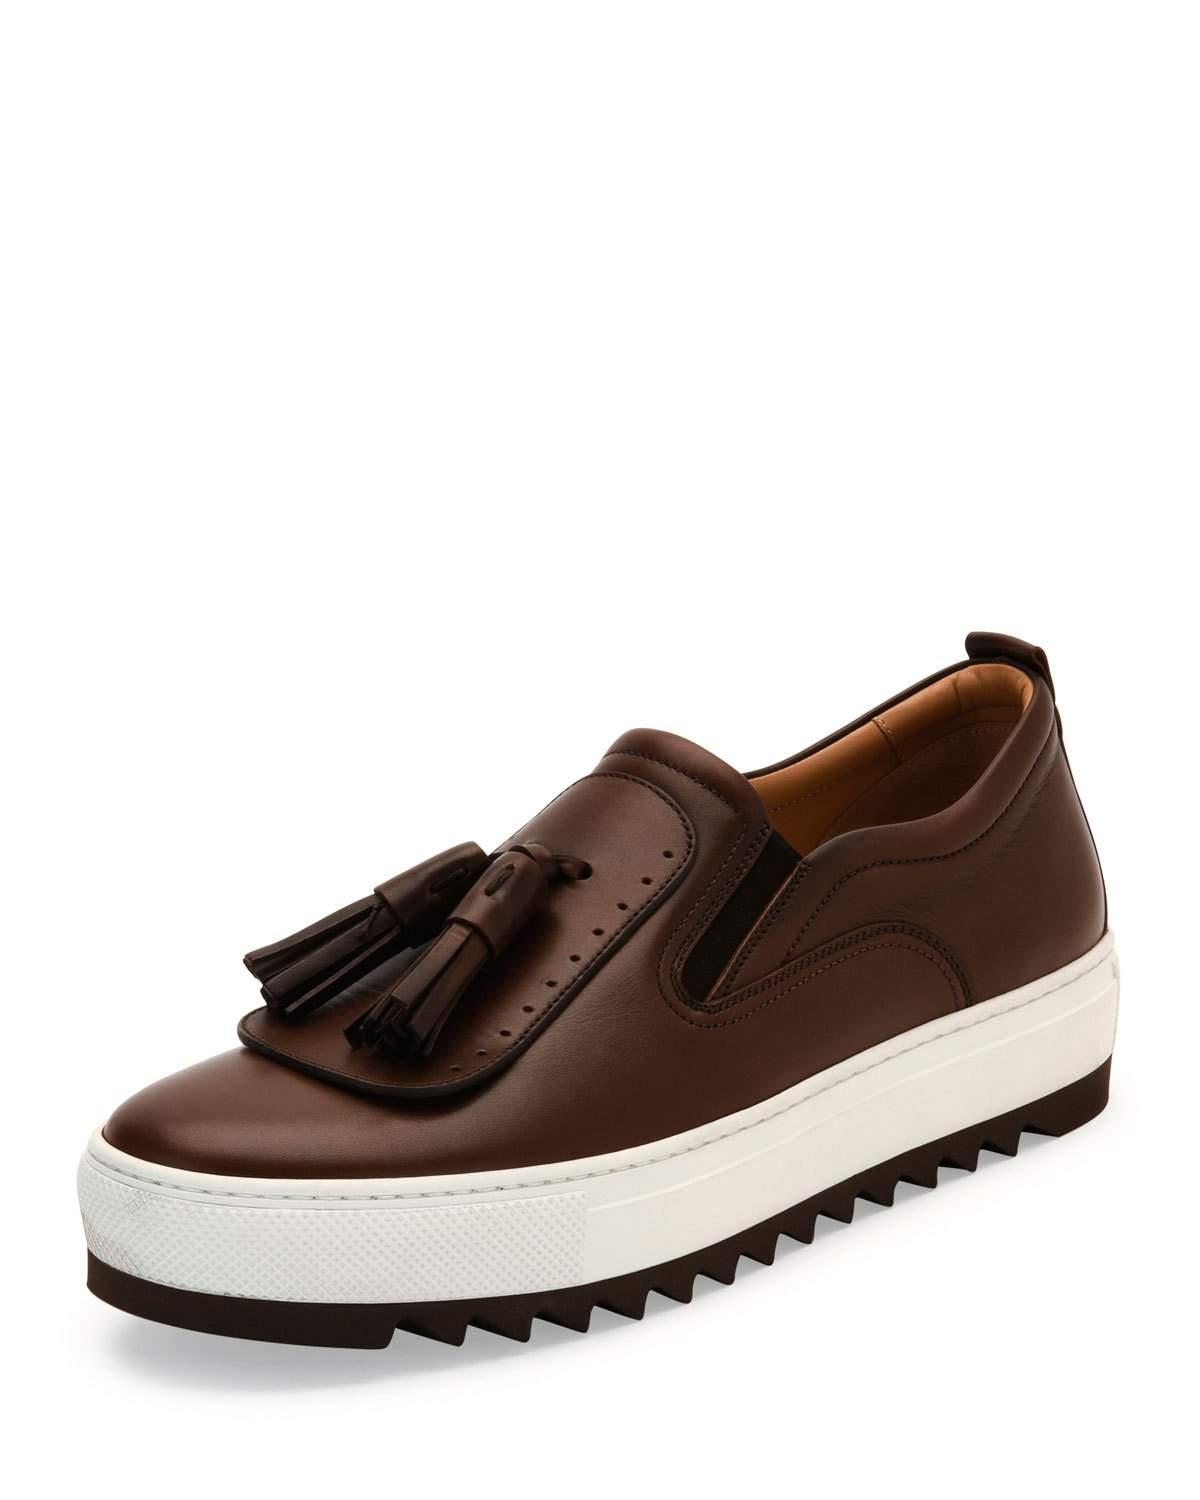 Shoes With Tassels Women